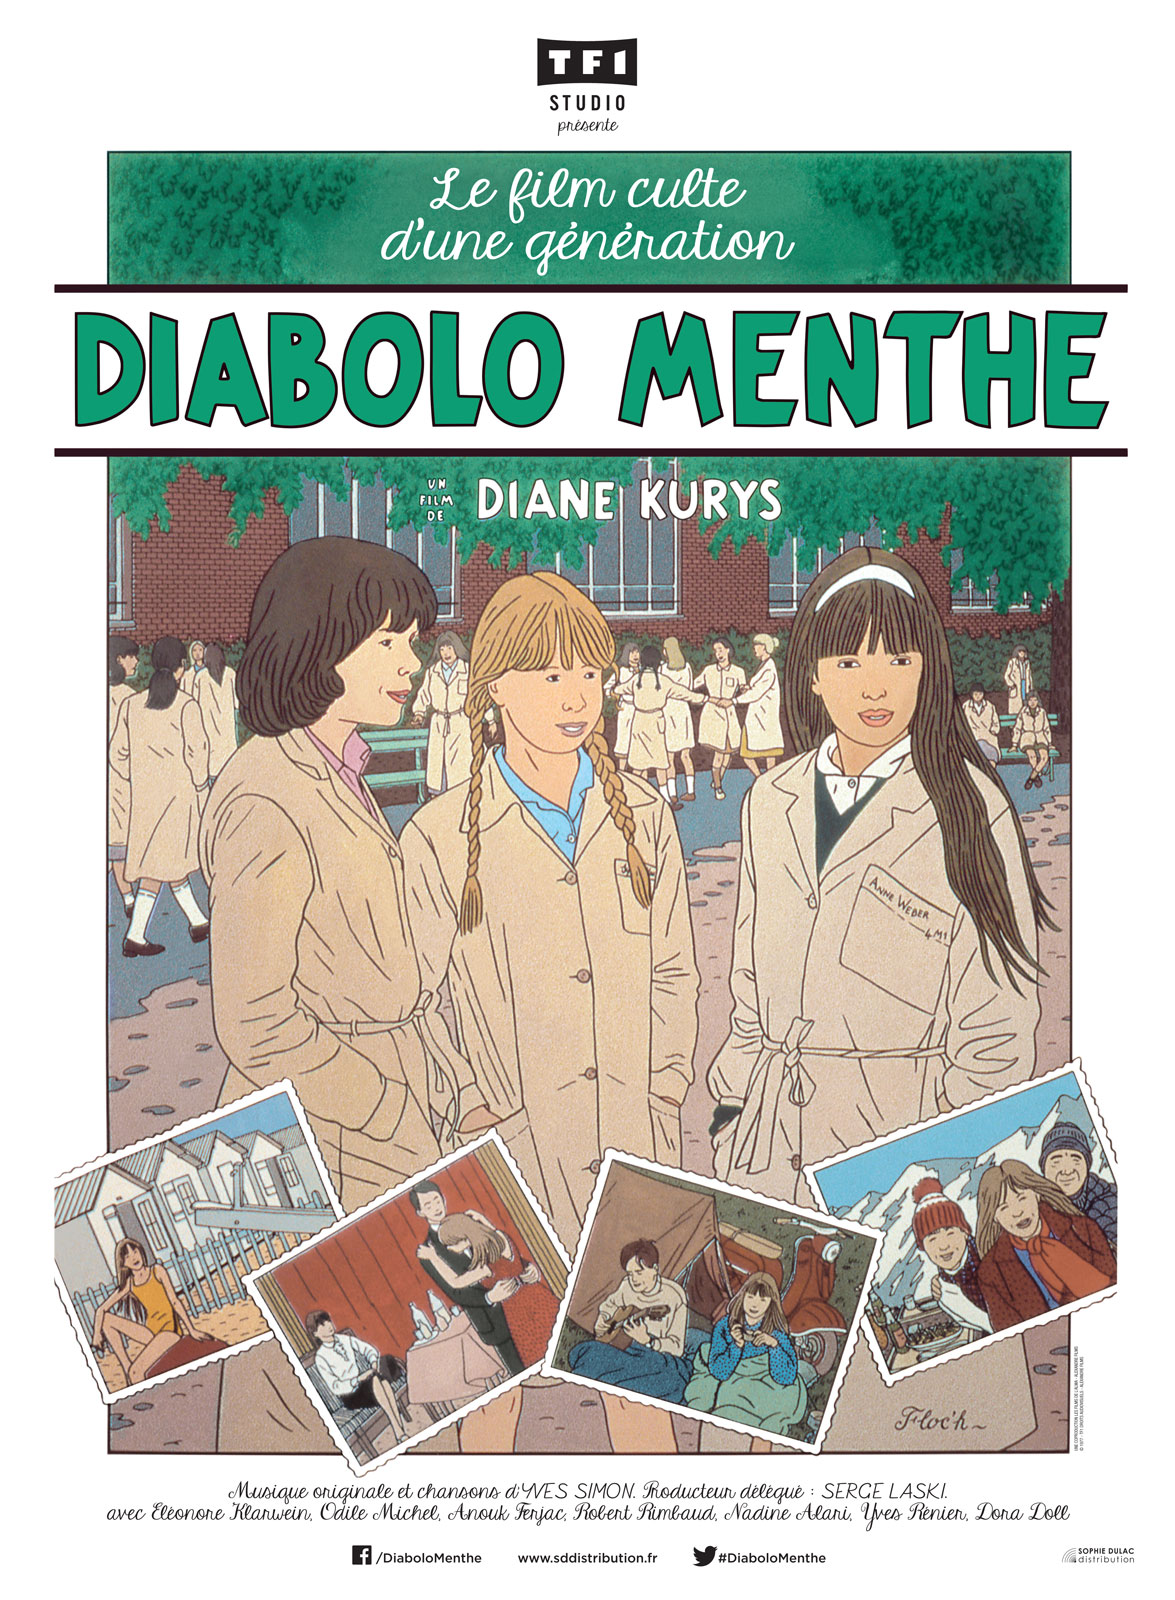 Diabolo Menthe Streaming Web-DL 720p